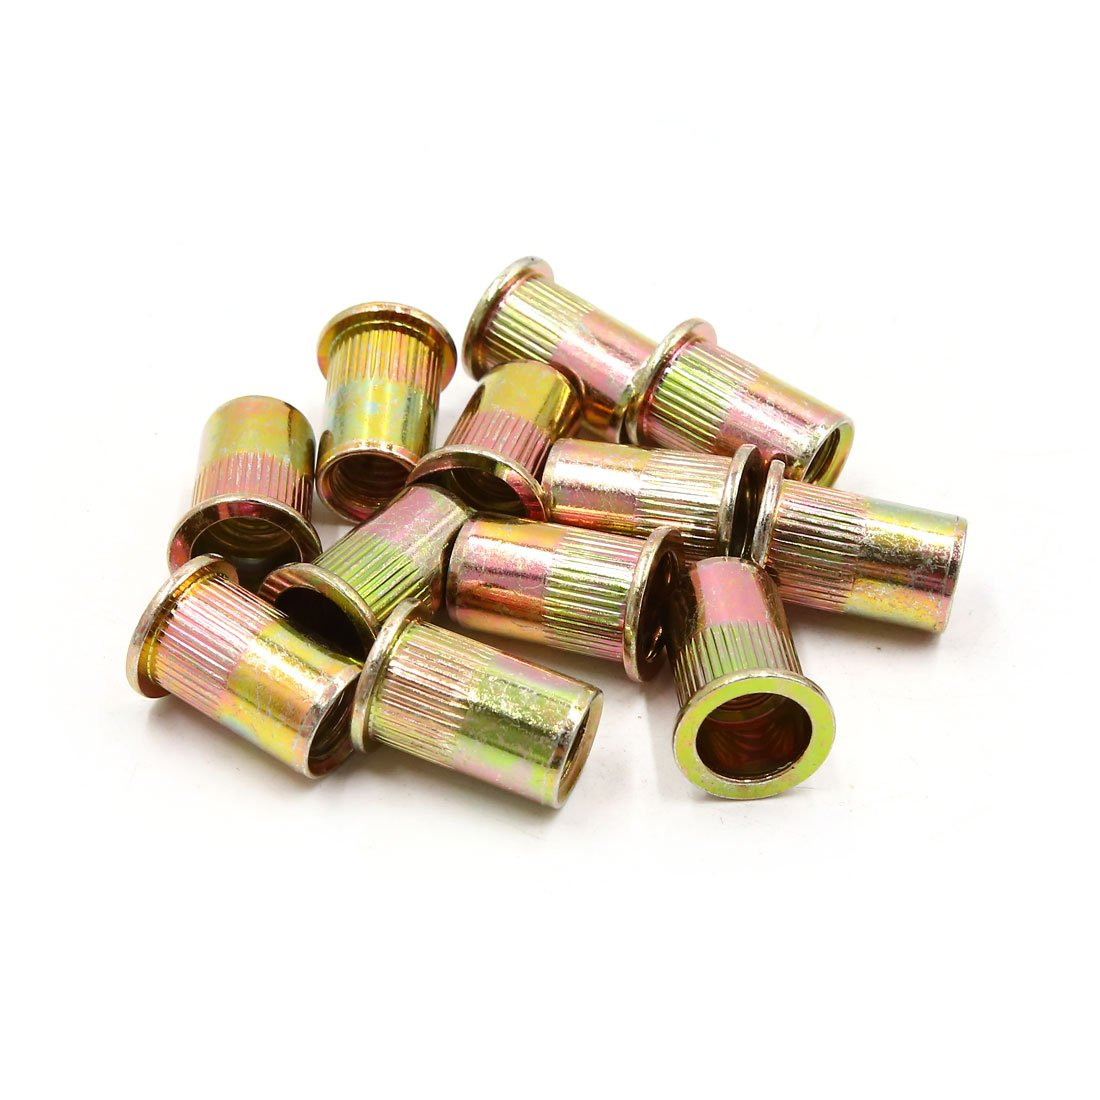 uxcell 12pcs 1/2 inch Thread Bronze Tone Flat Head Rivet Nut Insert Nutsert for Car